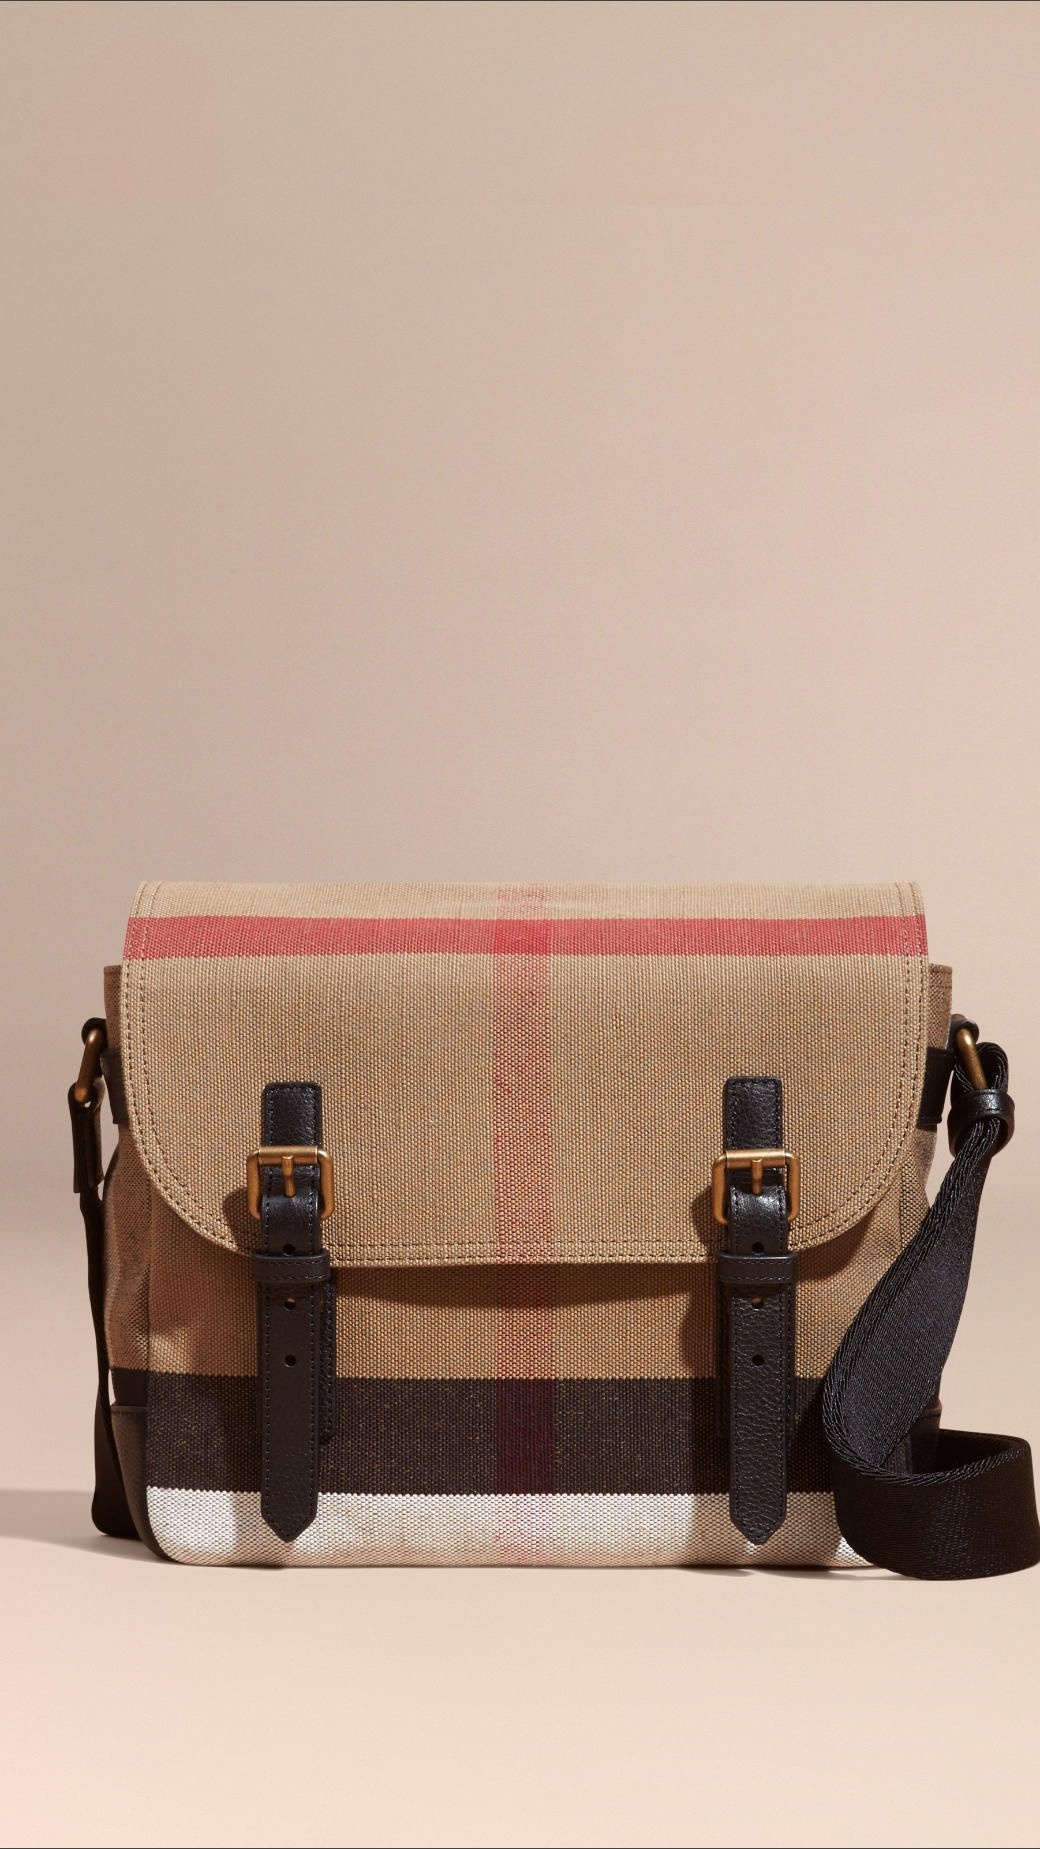 2dd8fa396 Men's Bags | Totes, Rucksacks & Briefcases | Burberry | Burberry ...